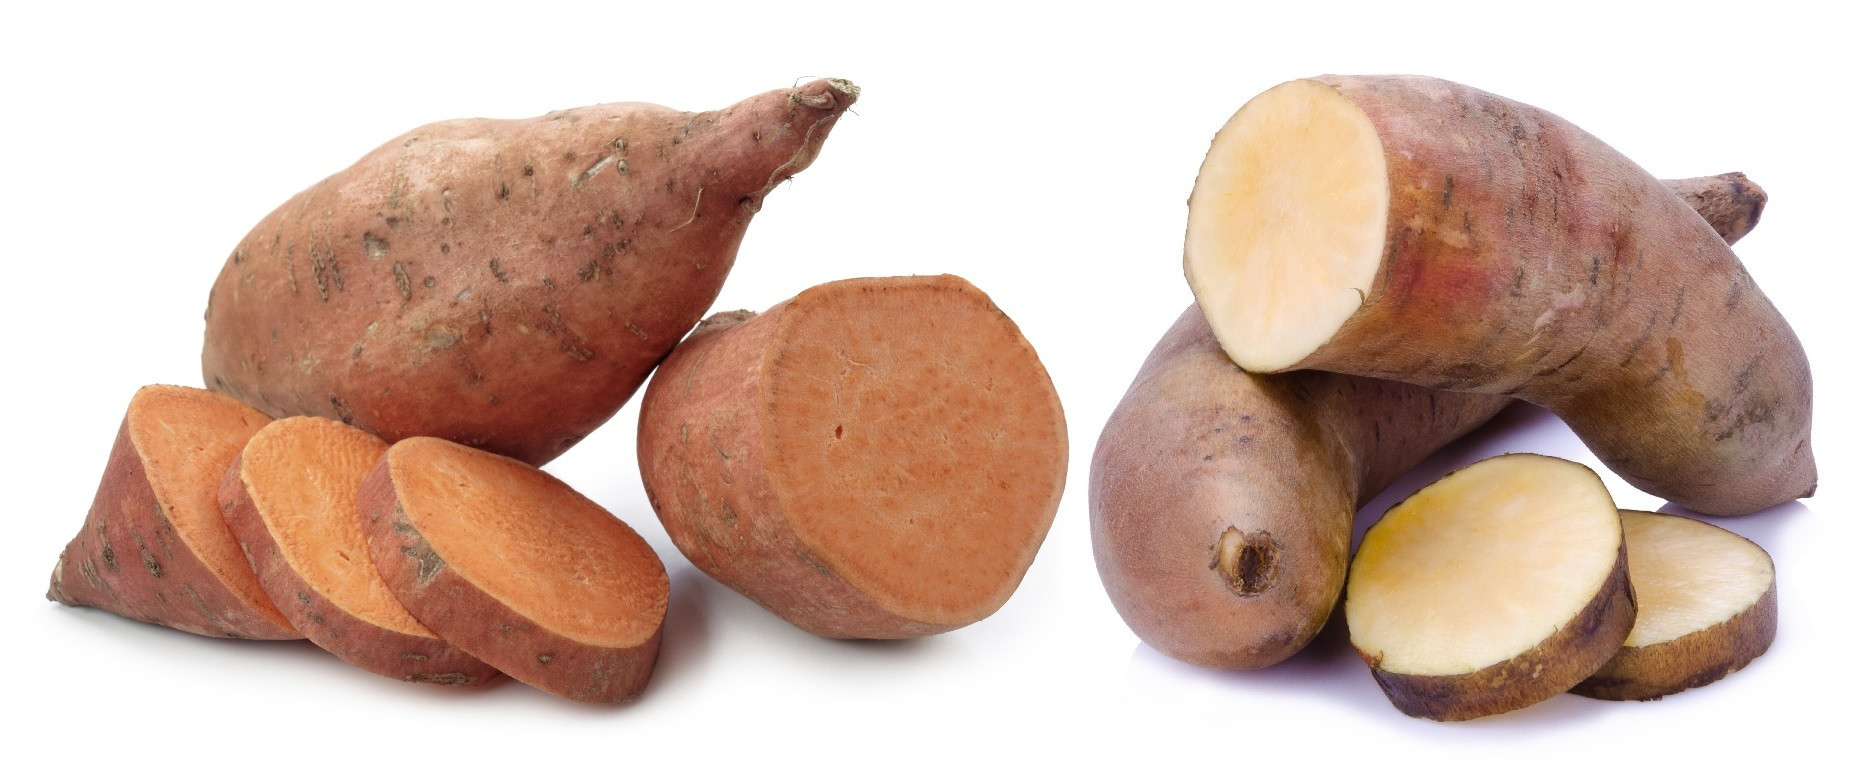 Sweet Potato Vs Yam  8 Ways to tell the difference between sweet potatoes and yams